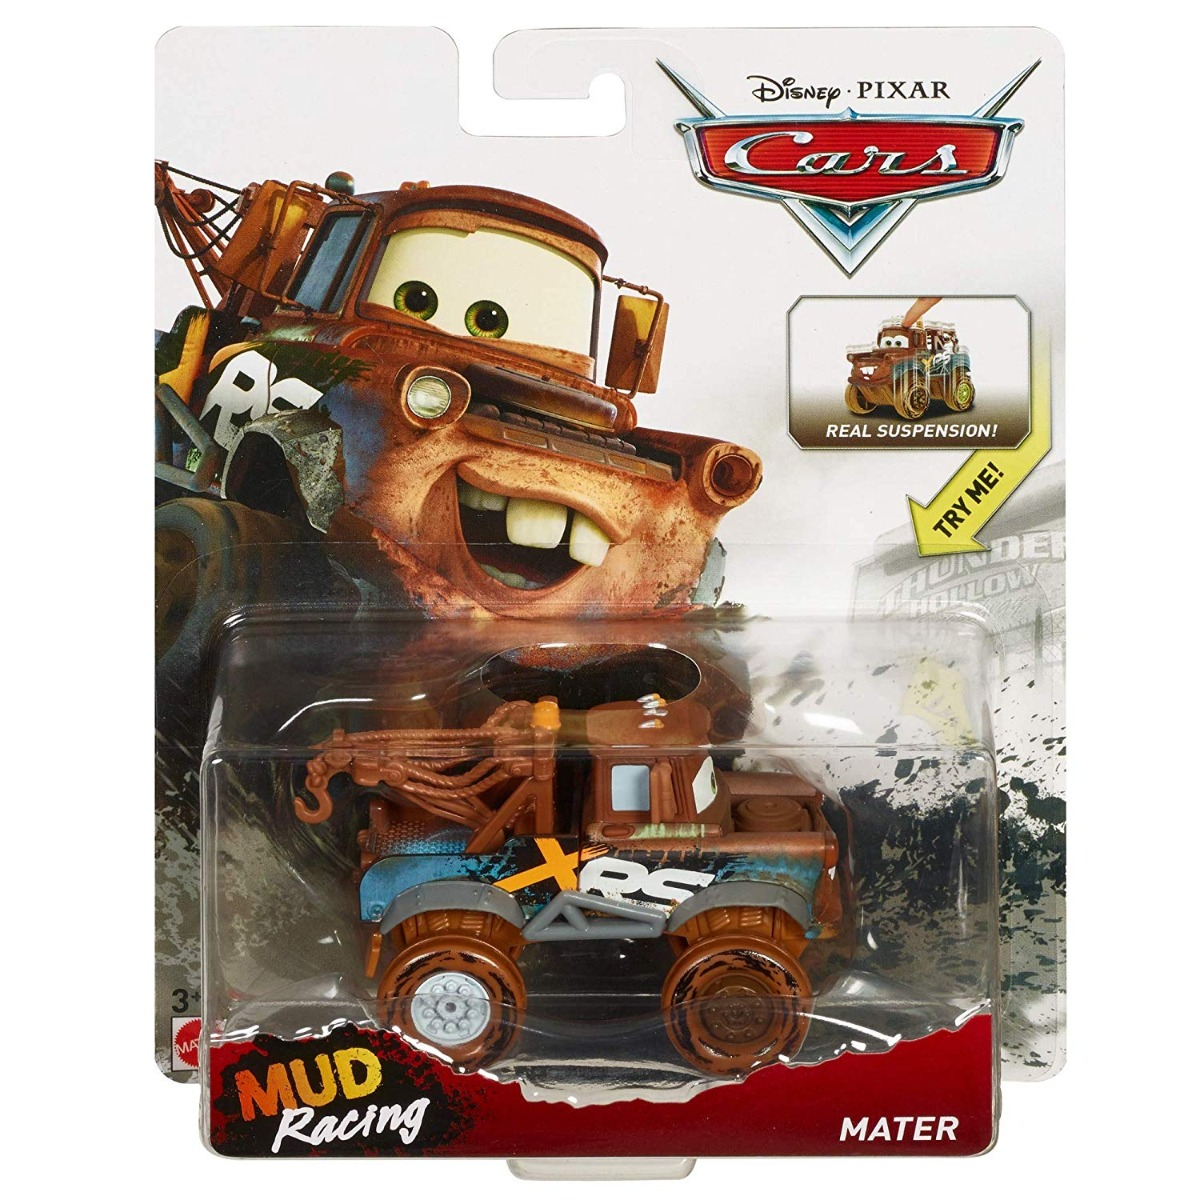 Masinuta Disney Cars XRS Mud Racing Maxi, Mater GBJ47